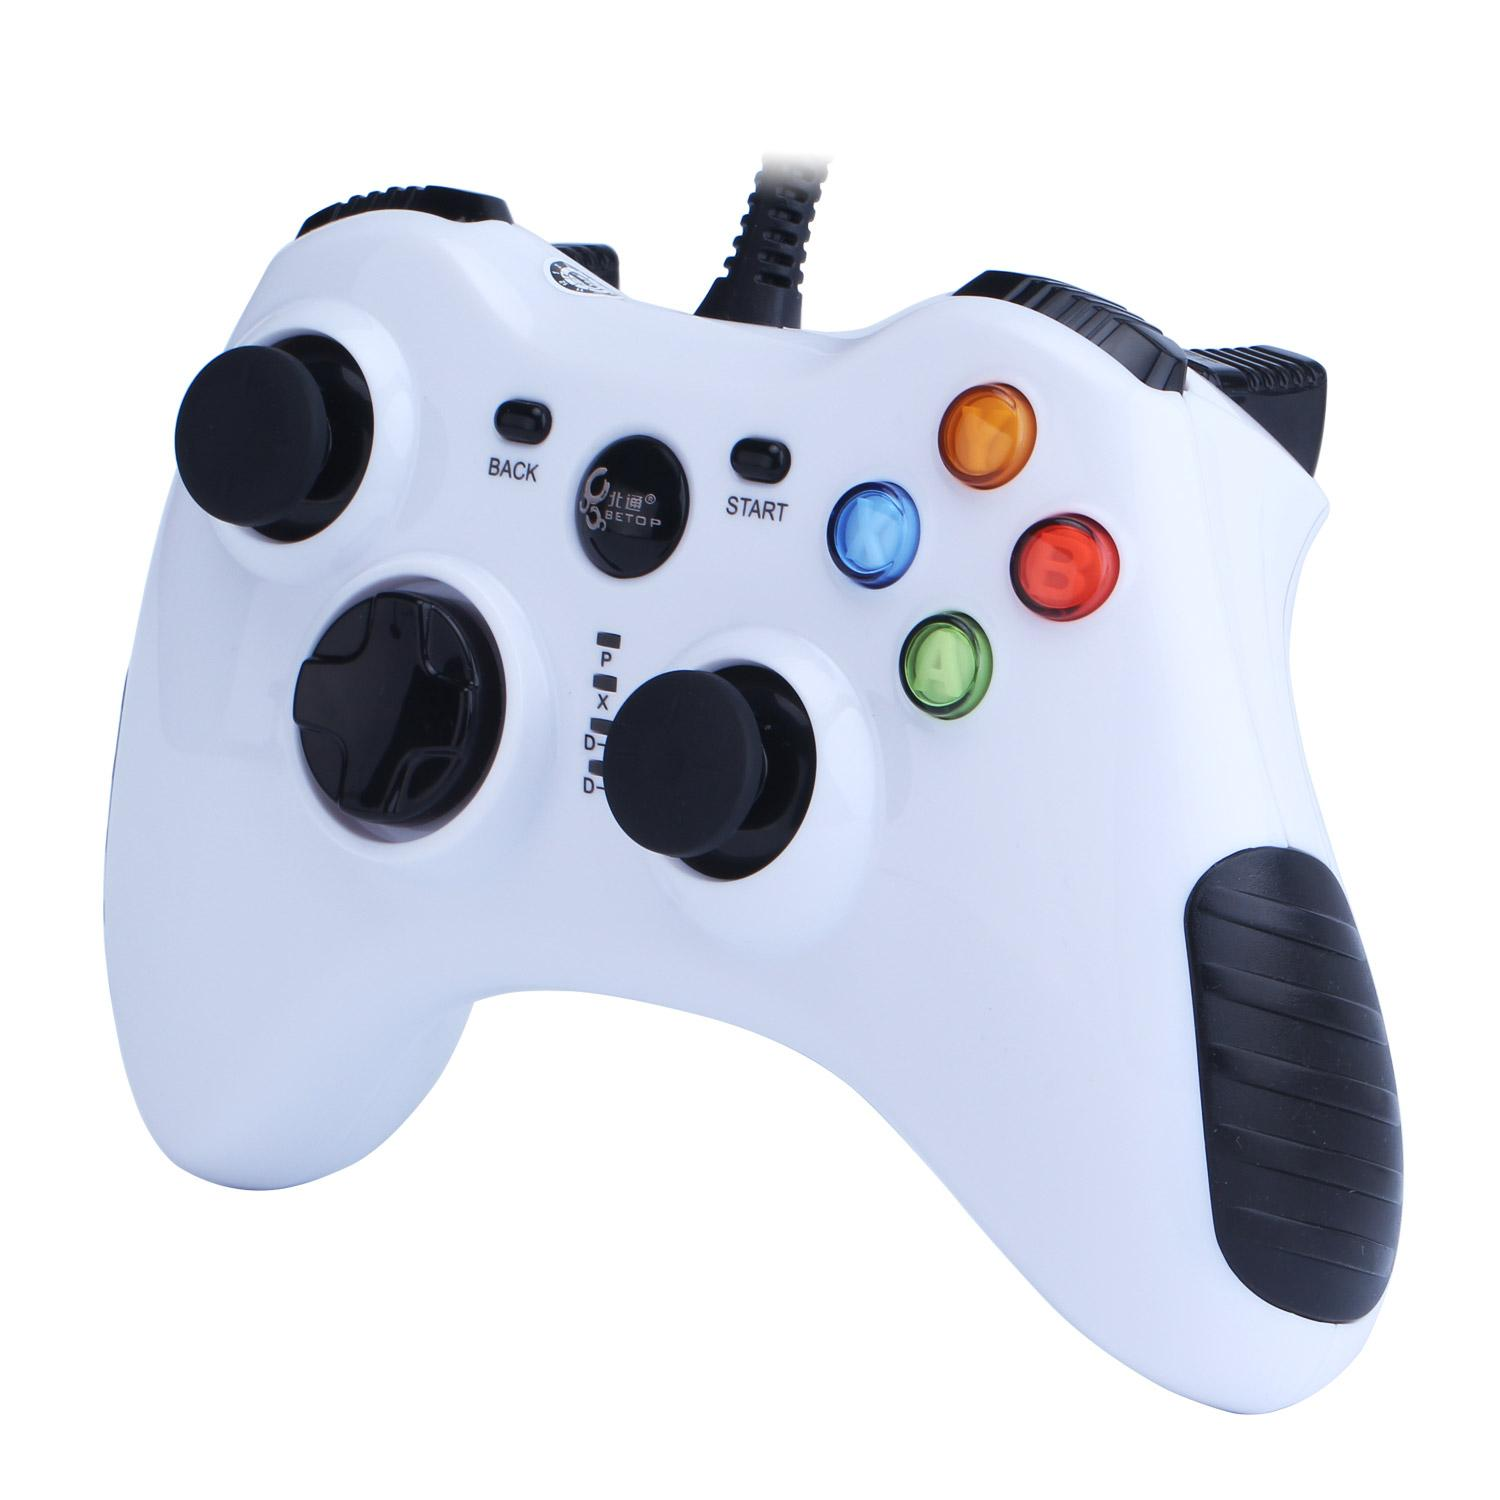 huohu Wired Game Controller for PC(Windows XP/7/8/10) Android Devices (White)